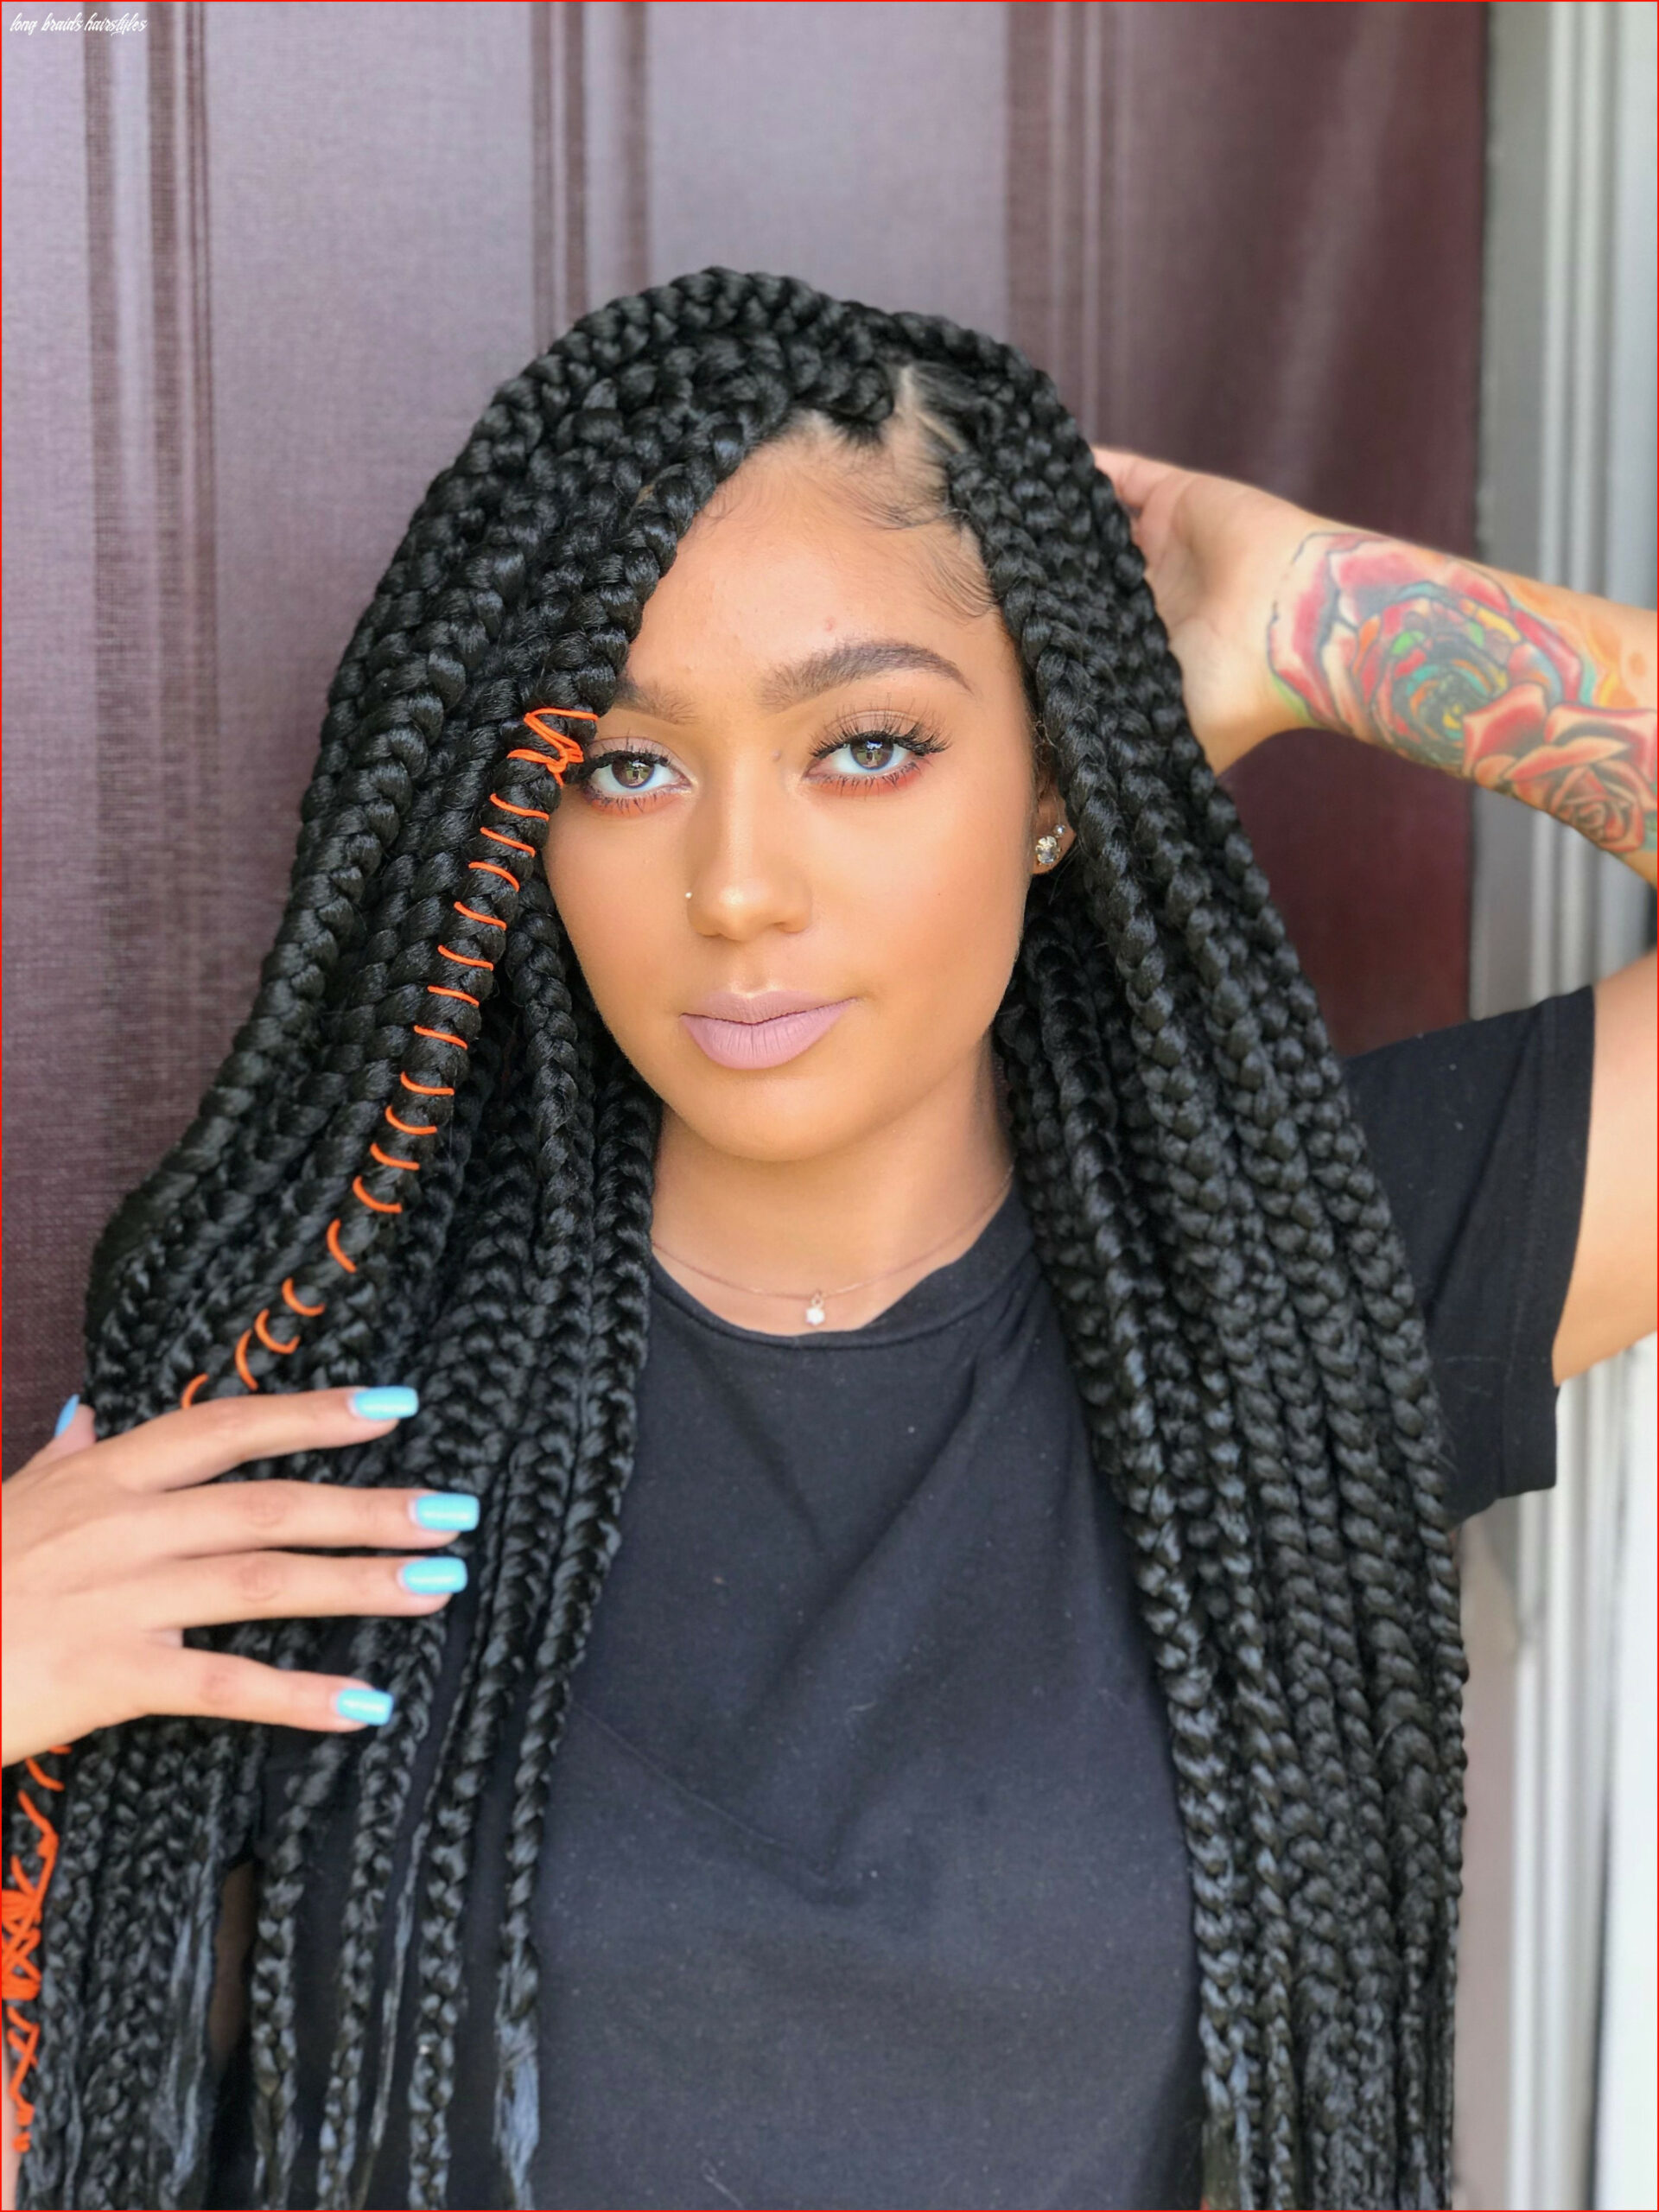 Braided Hairstyles Archives - Popshopdjs.com